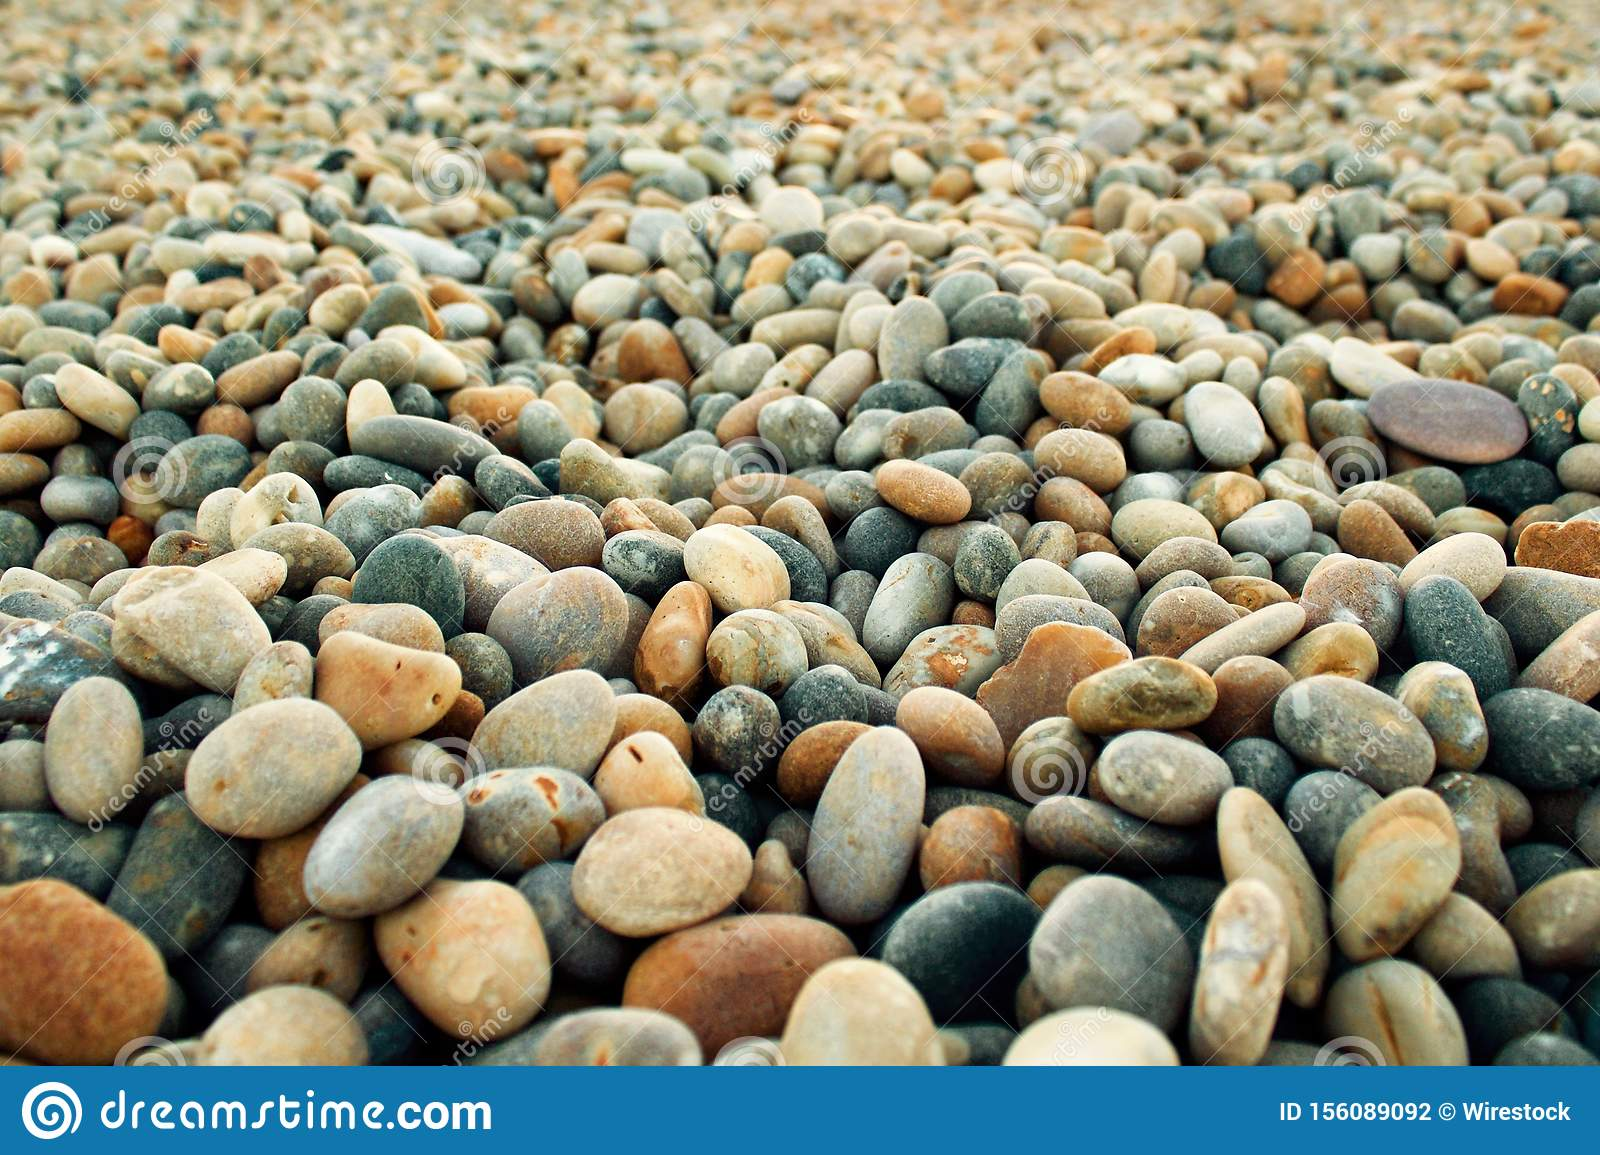 Closeup Selective Focus Shot Of Round Small Pebbles At The